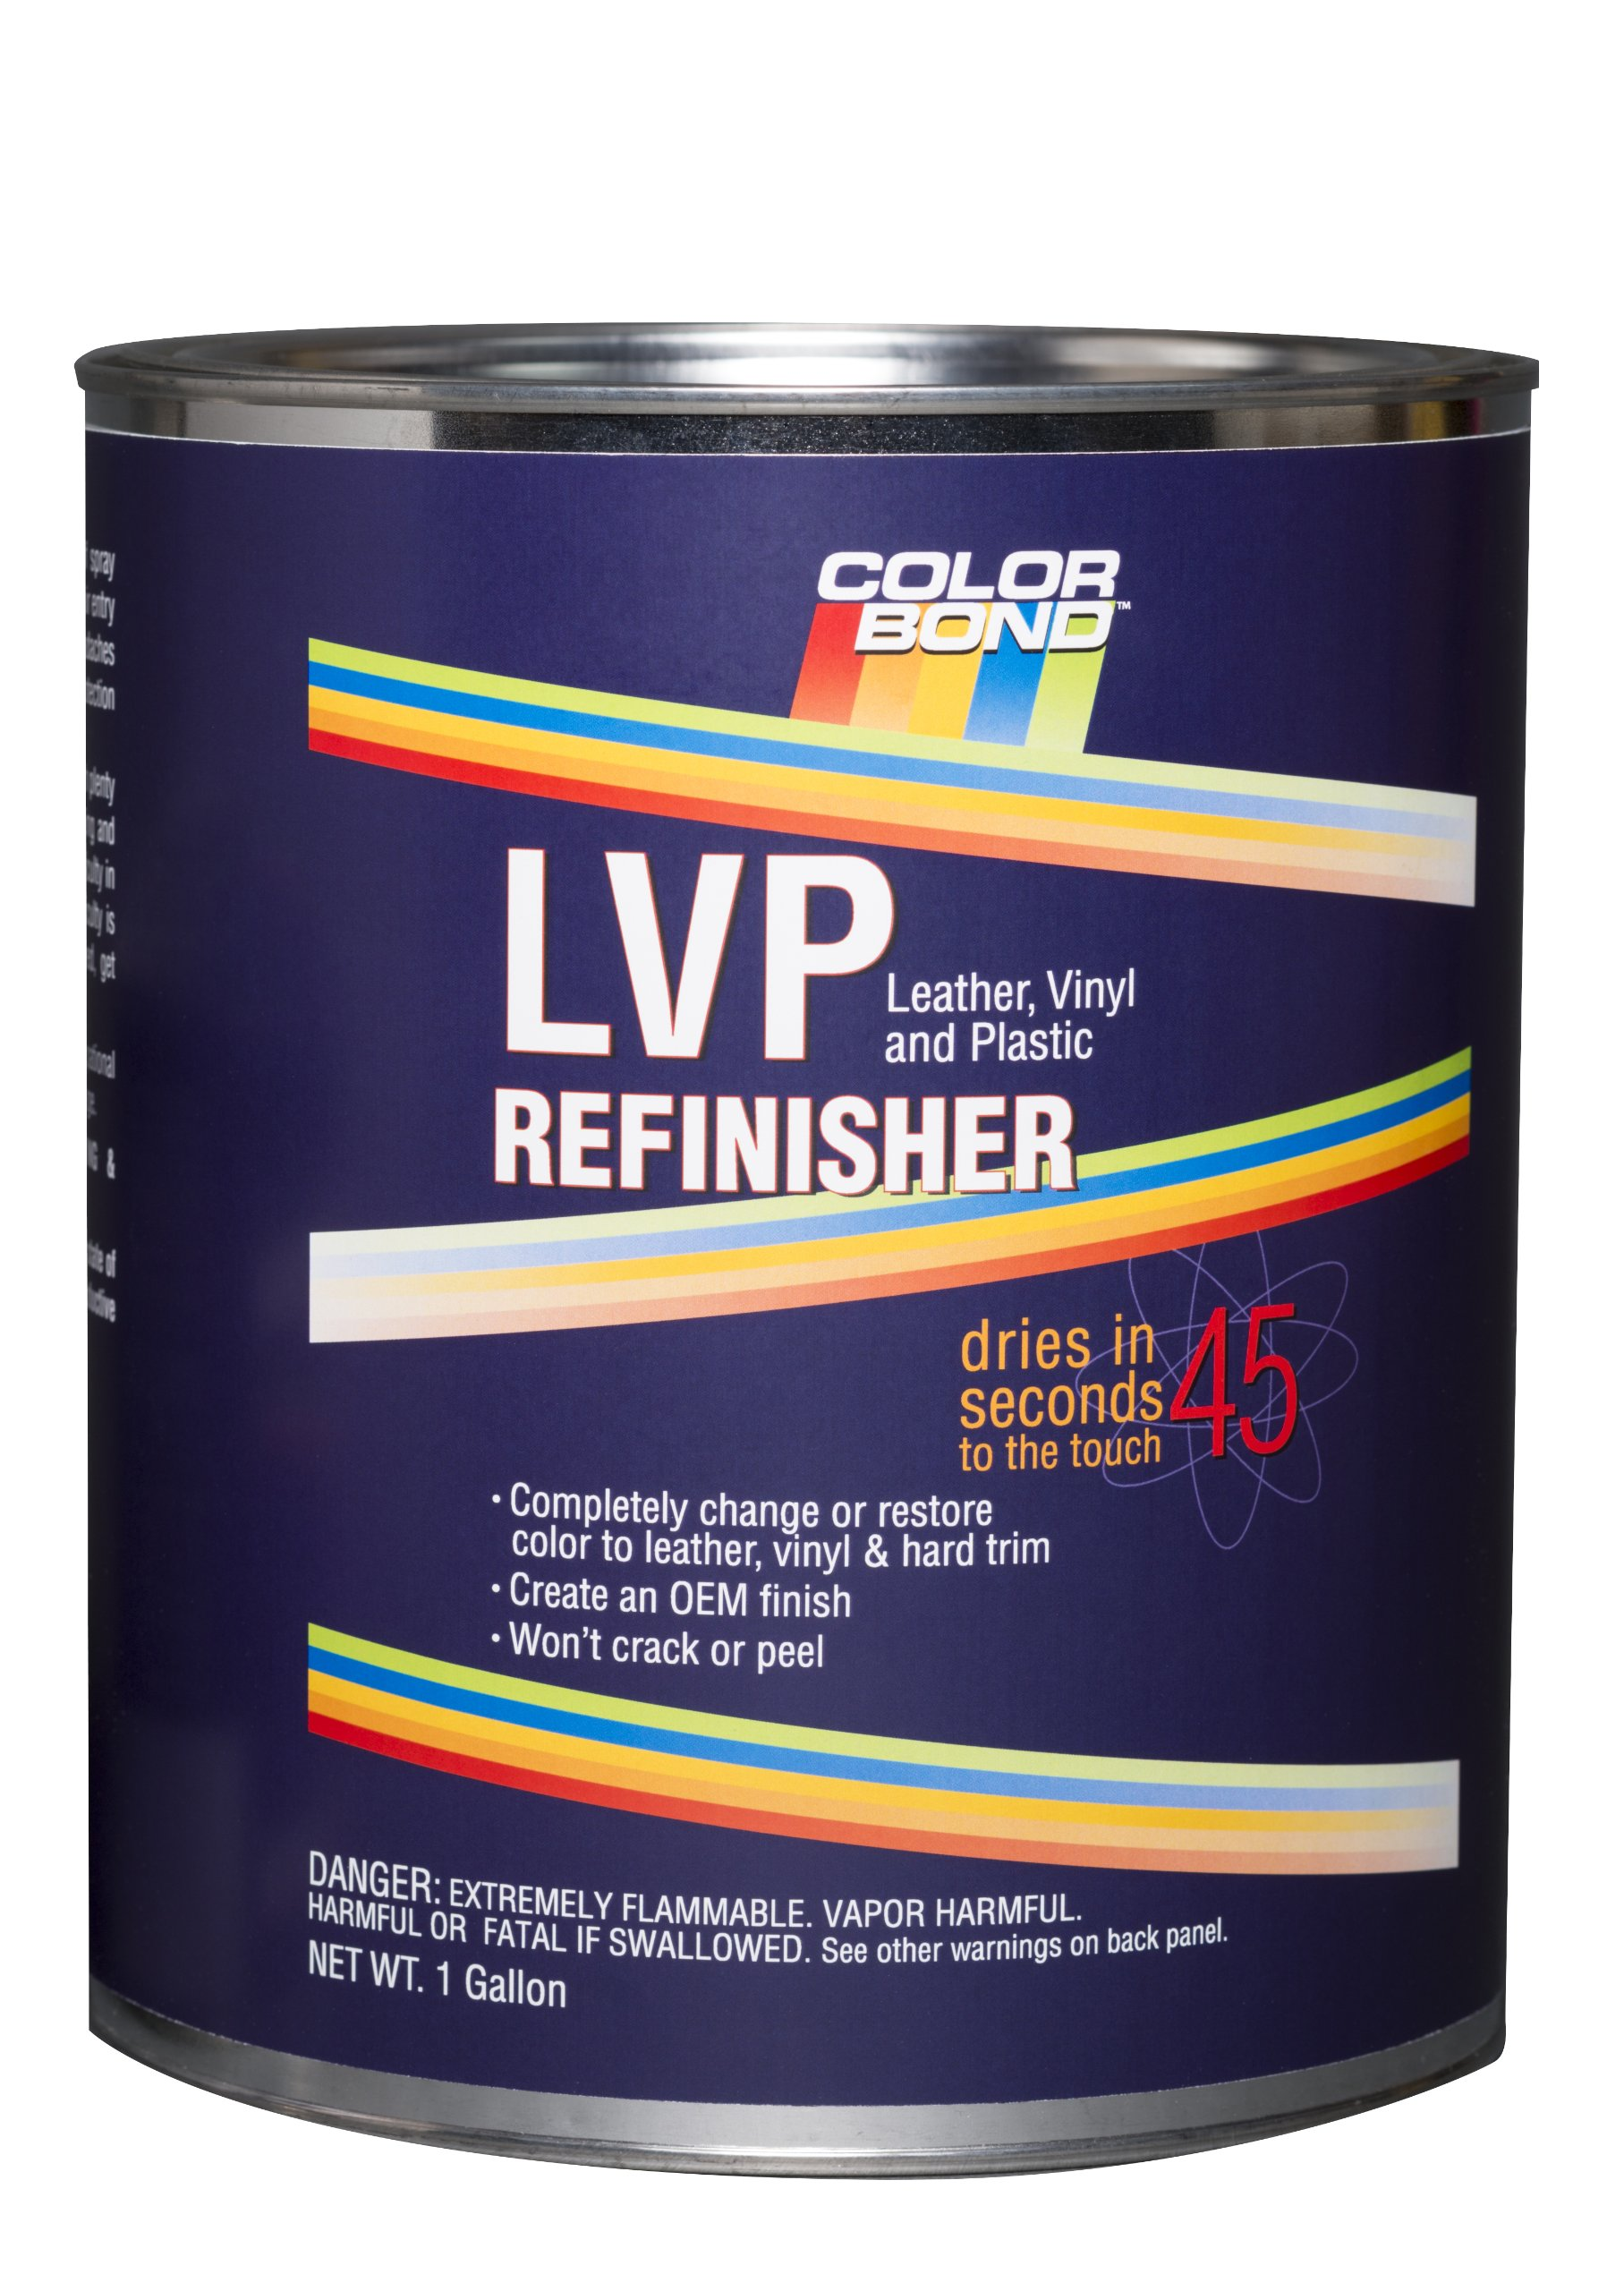 ColorBond (1239) Black LVP Leather, Vinyl and Plastic Refinisher Mixing Base Paint - 1 Gallon by Colorbond